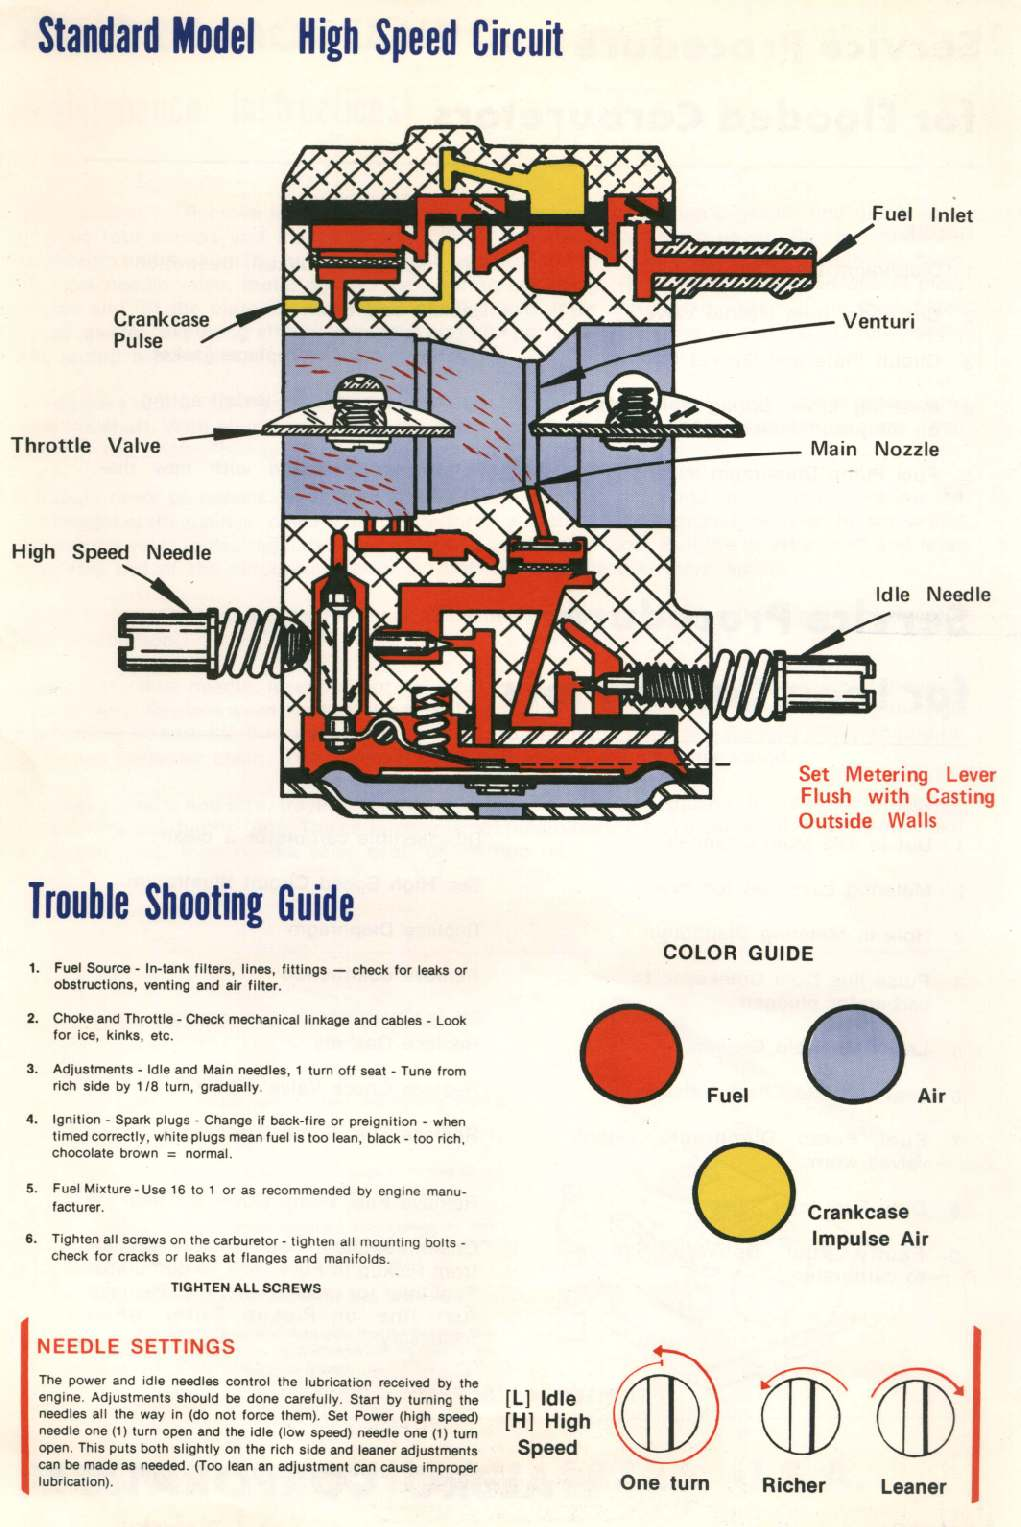 Poulan Chainsaw Walbro Carburetor Diagram Guide And Wiring Hdc Carb Schemes Pro Pp4218 Parts Kit